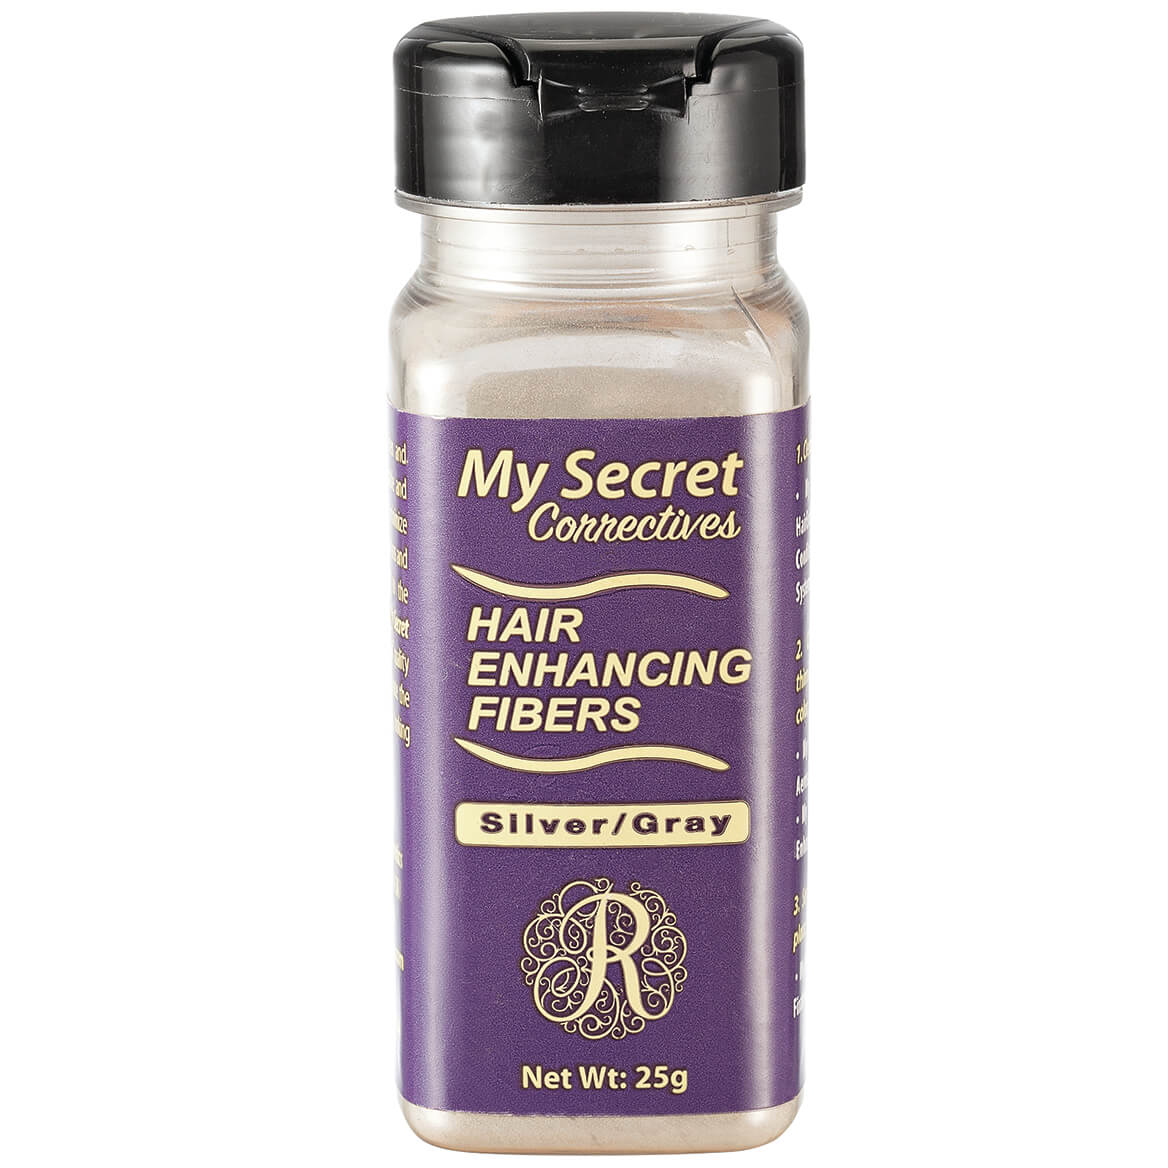 My Secret Correctives™ Hair Enhancing Fibers-367553